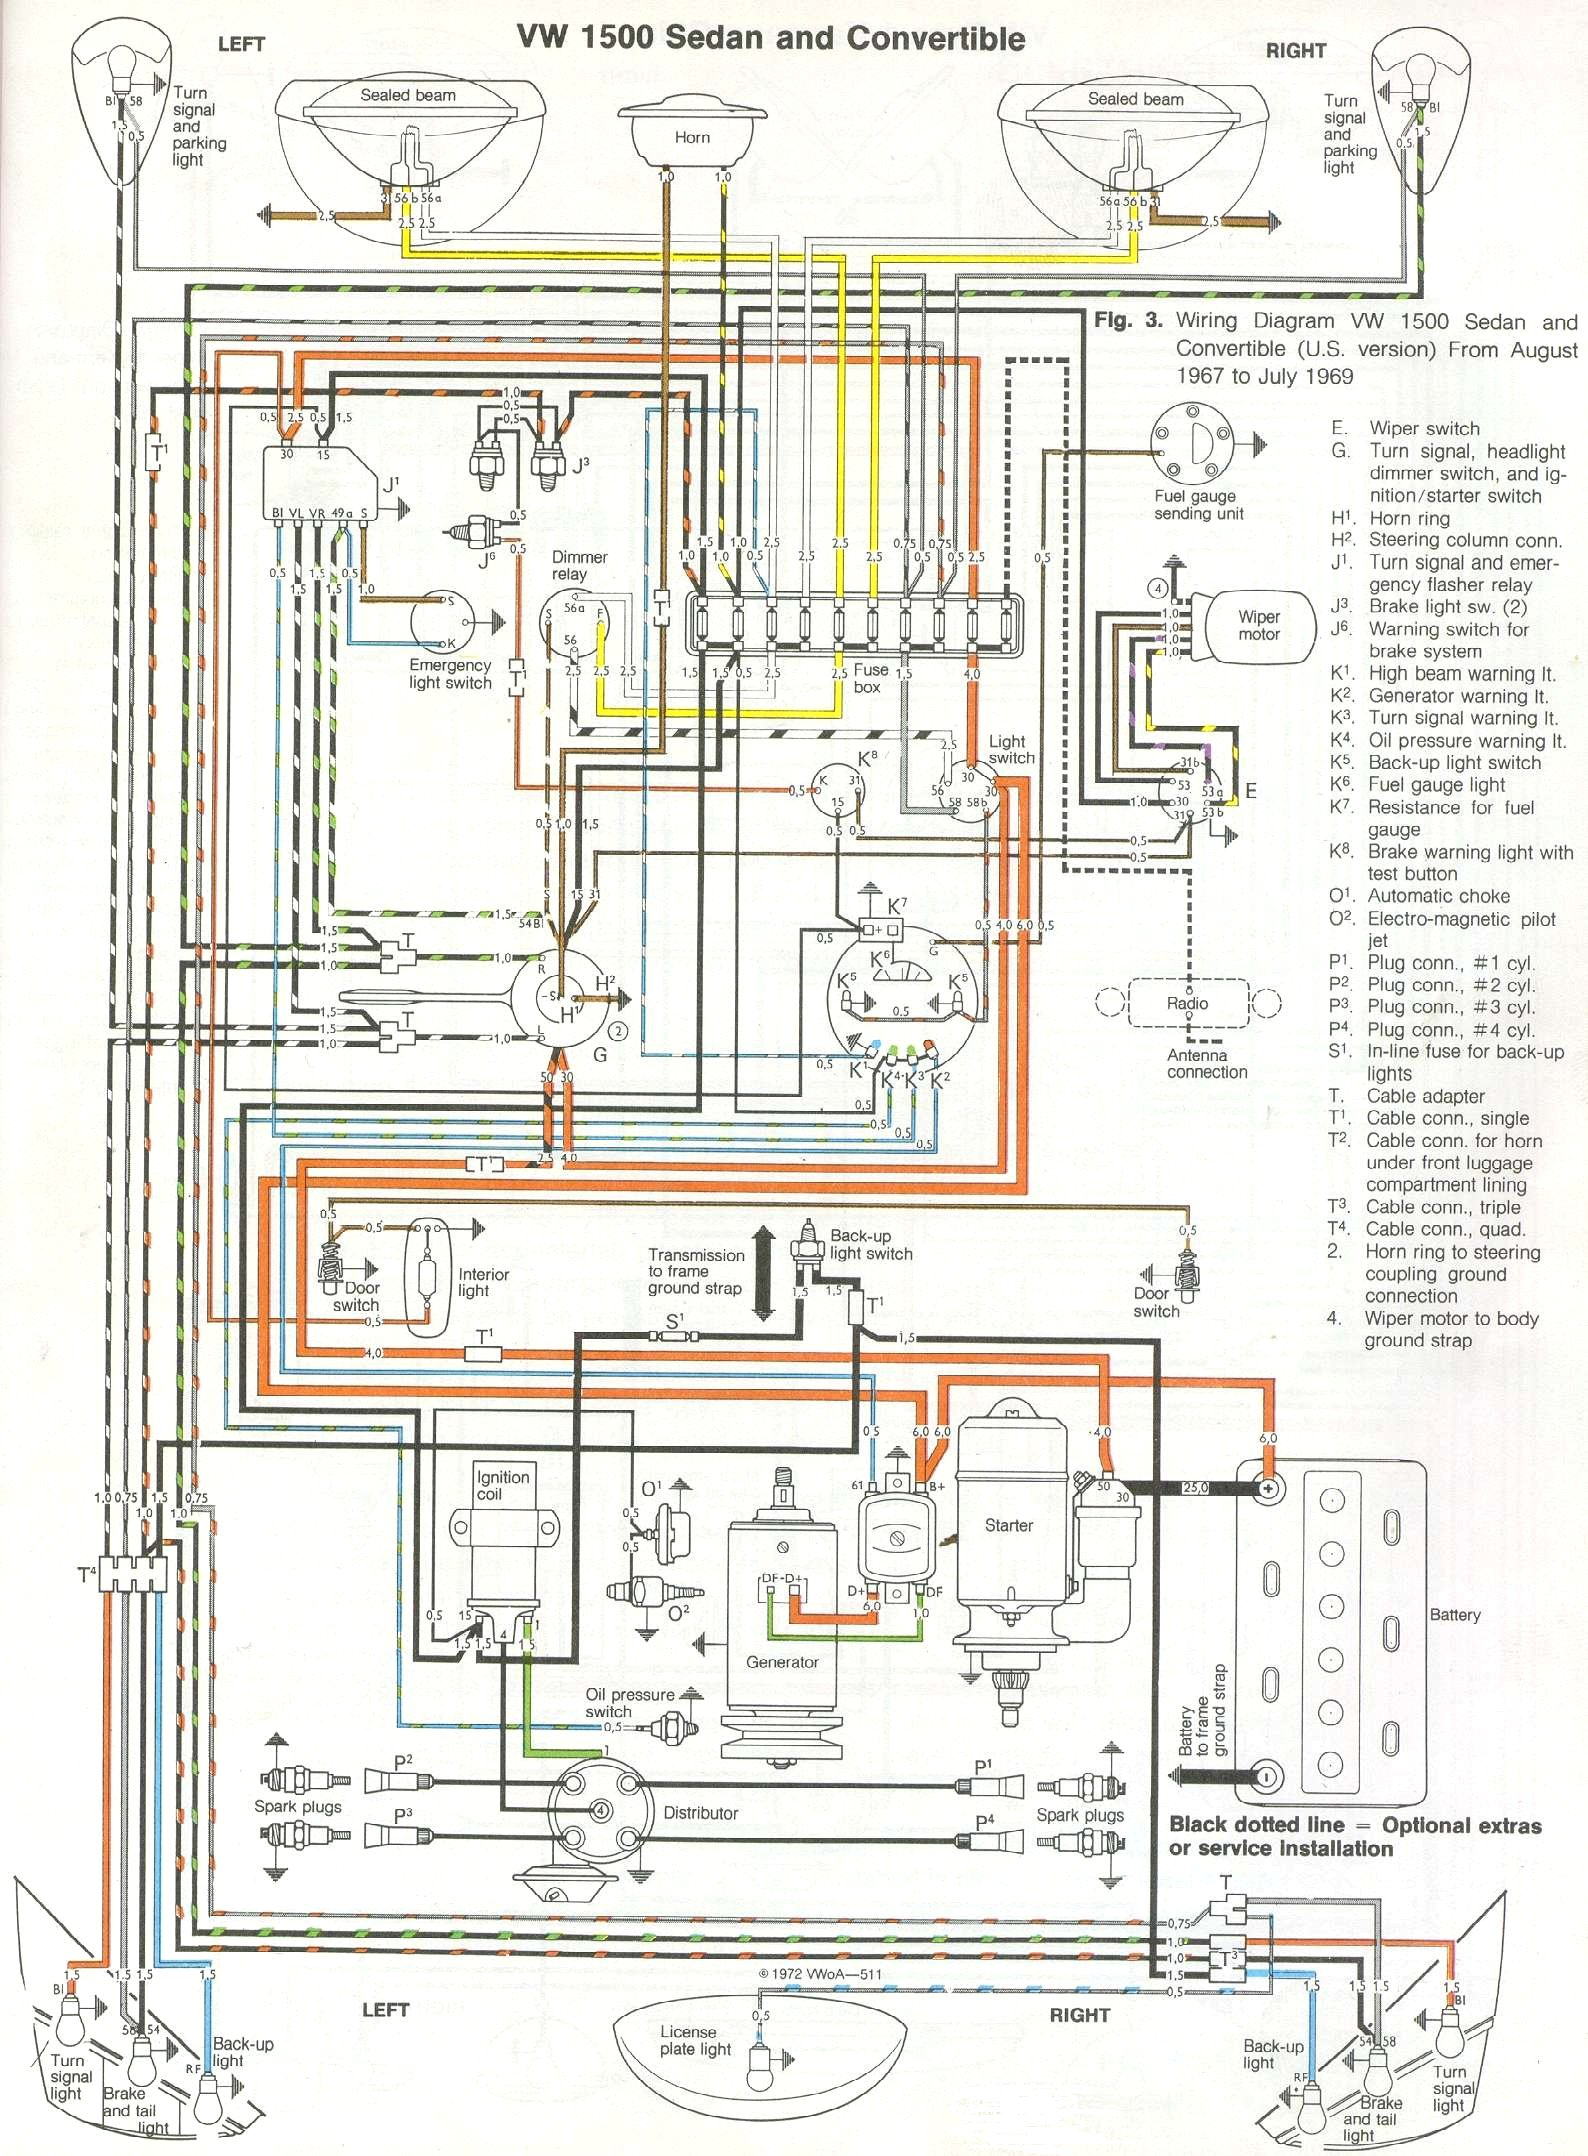 bug_6869 thesamba com type 1 wiring diagrams 1973 vw wiring diagram at pacquiaovsvargaslive.co